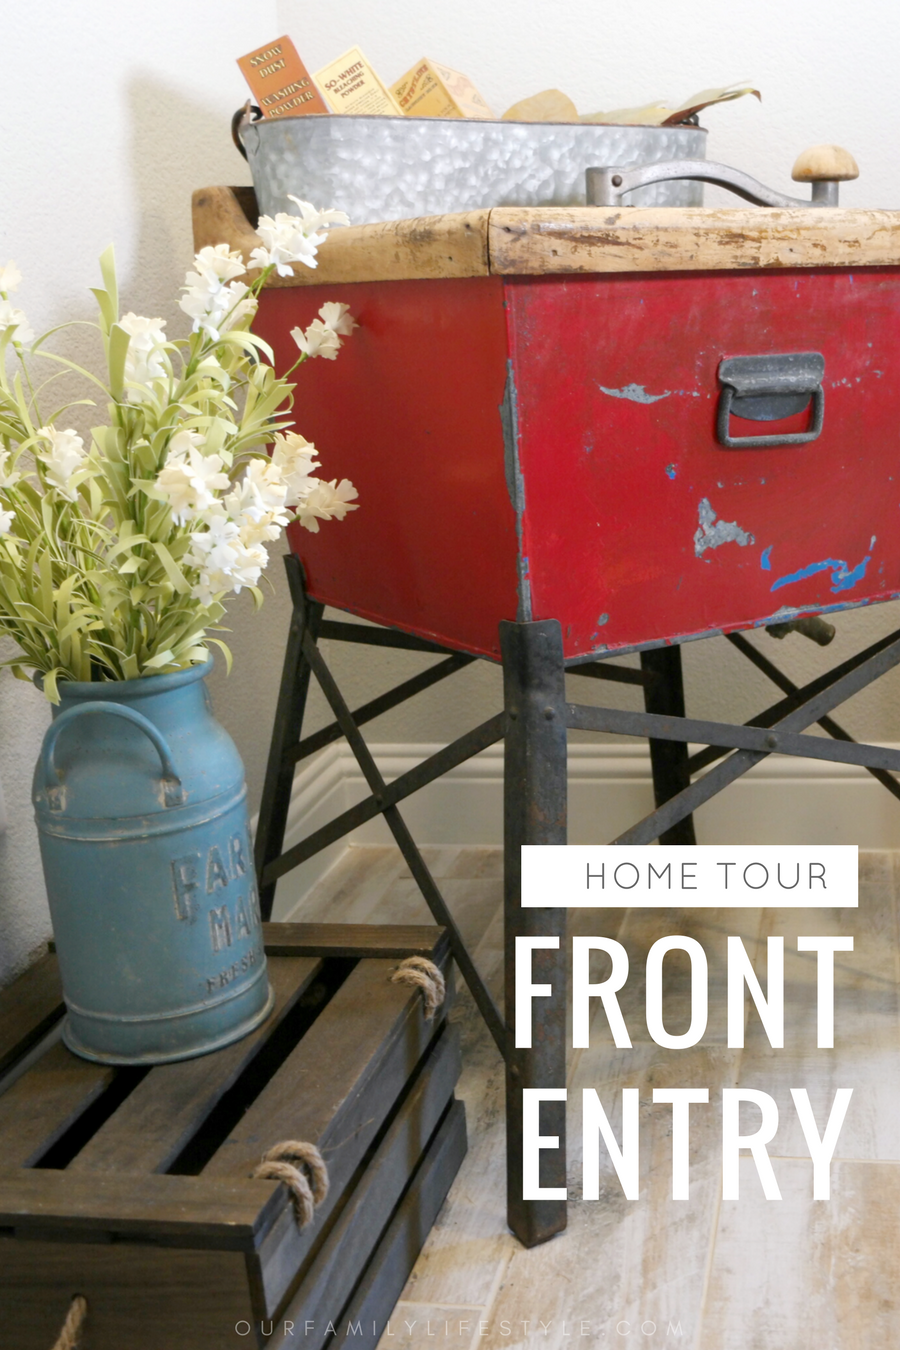 Home Tour :: Front Entry